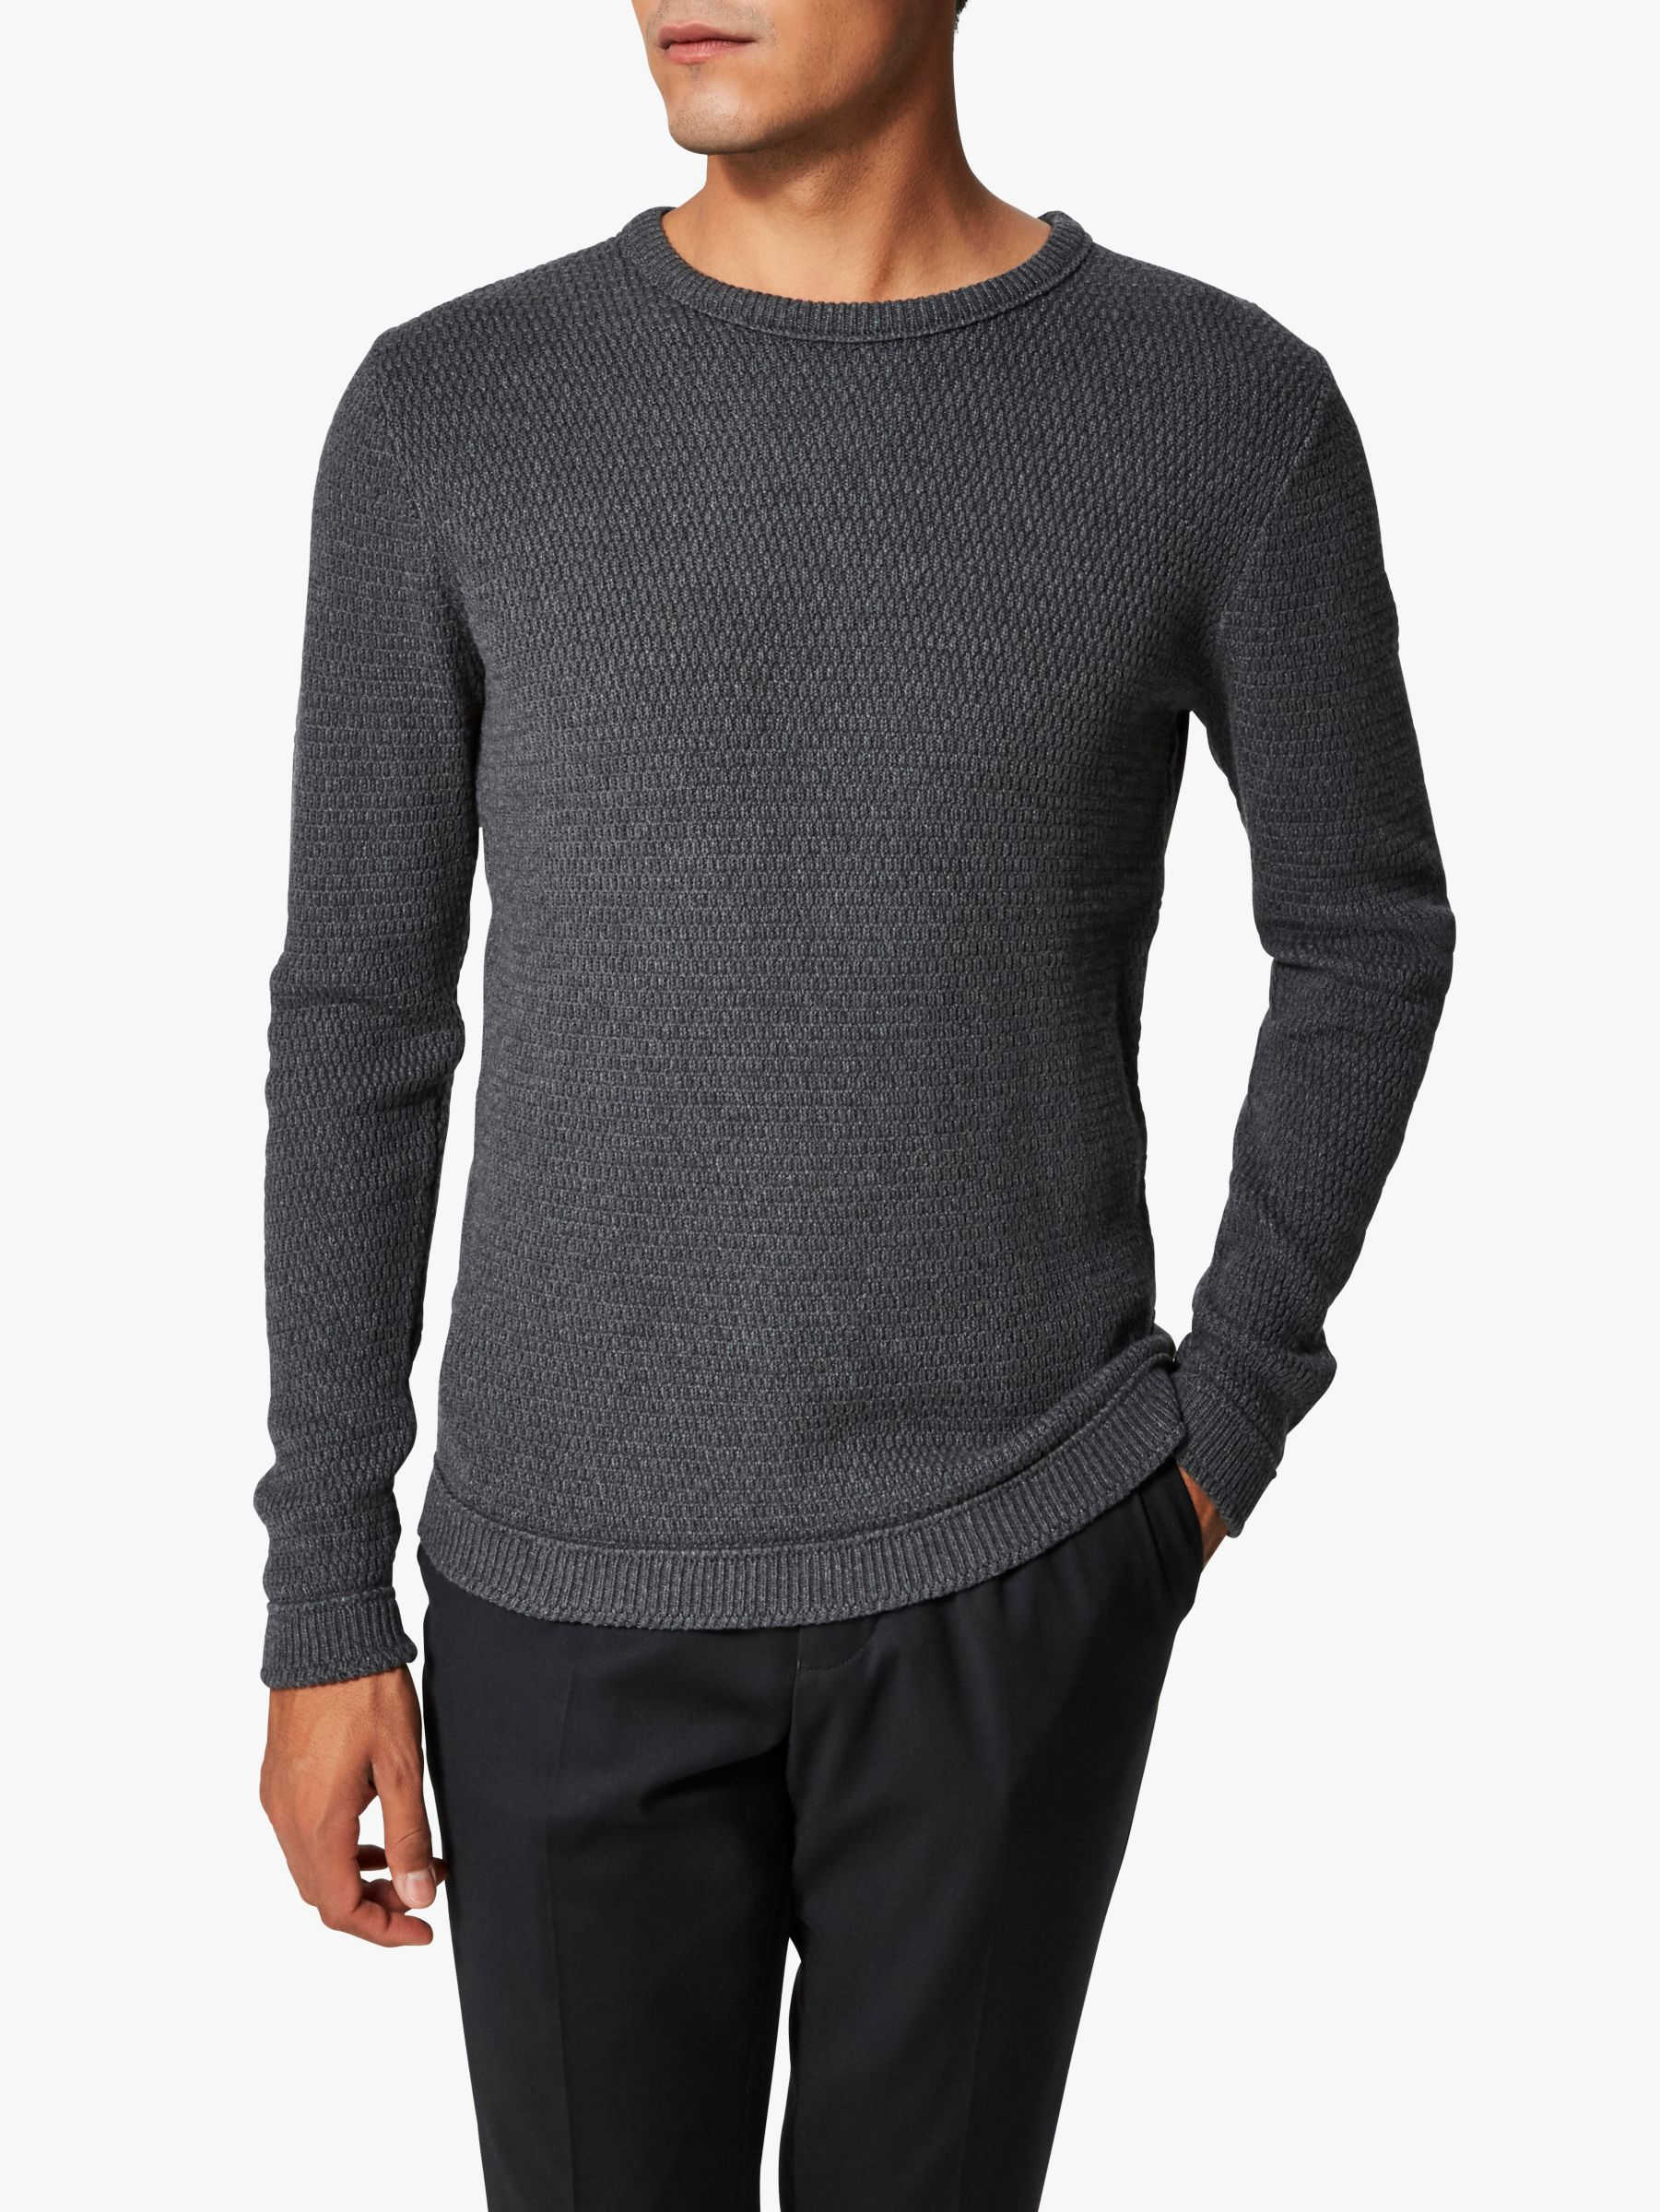 Selected Homme SELECTED HOMME Organic Cotton Knitted Jumper